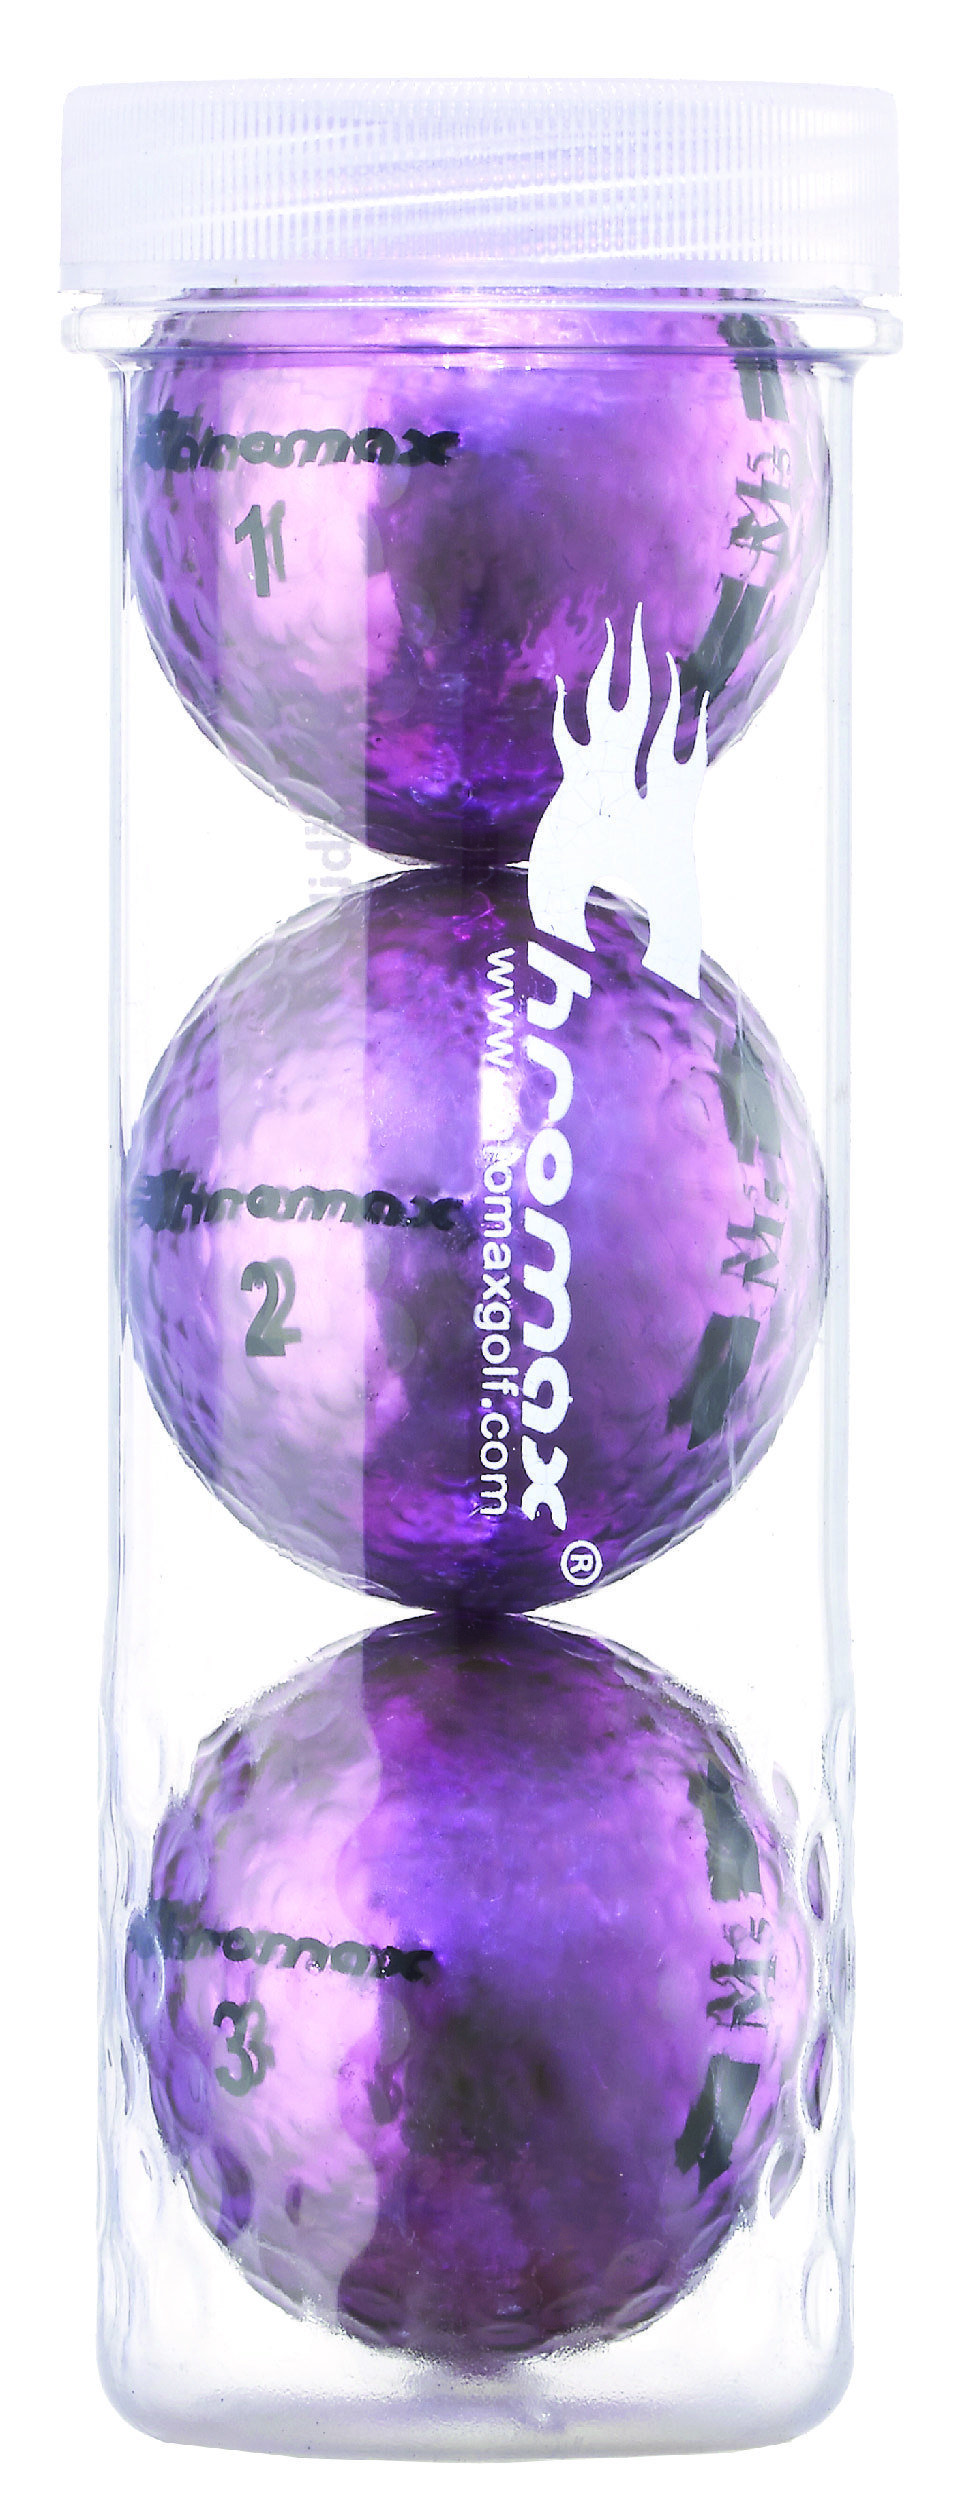 Chromax® Colored Purple Golf Balls - Metallic M5 3 Ball Tube CM53PUR